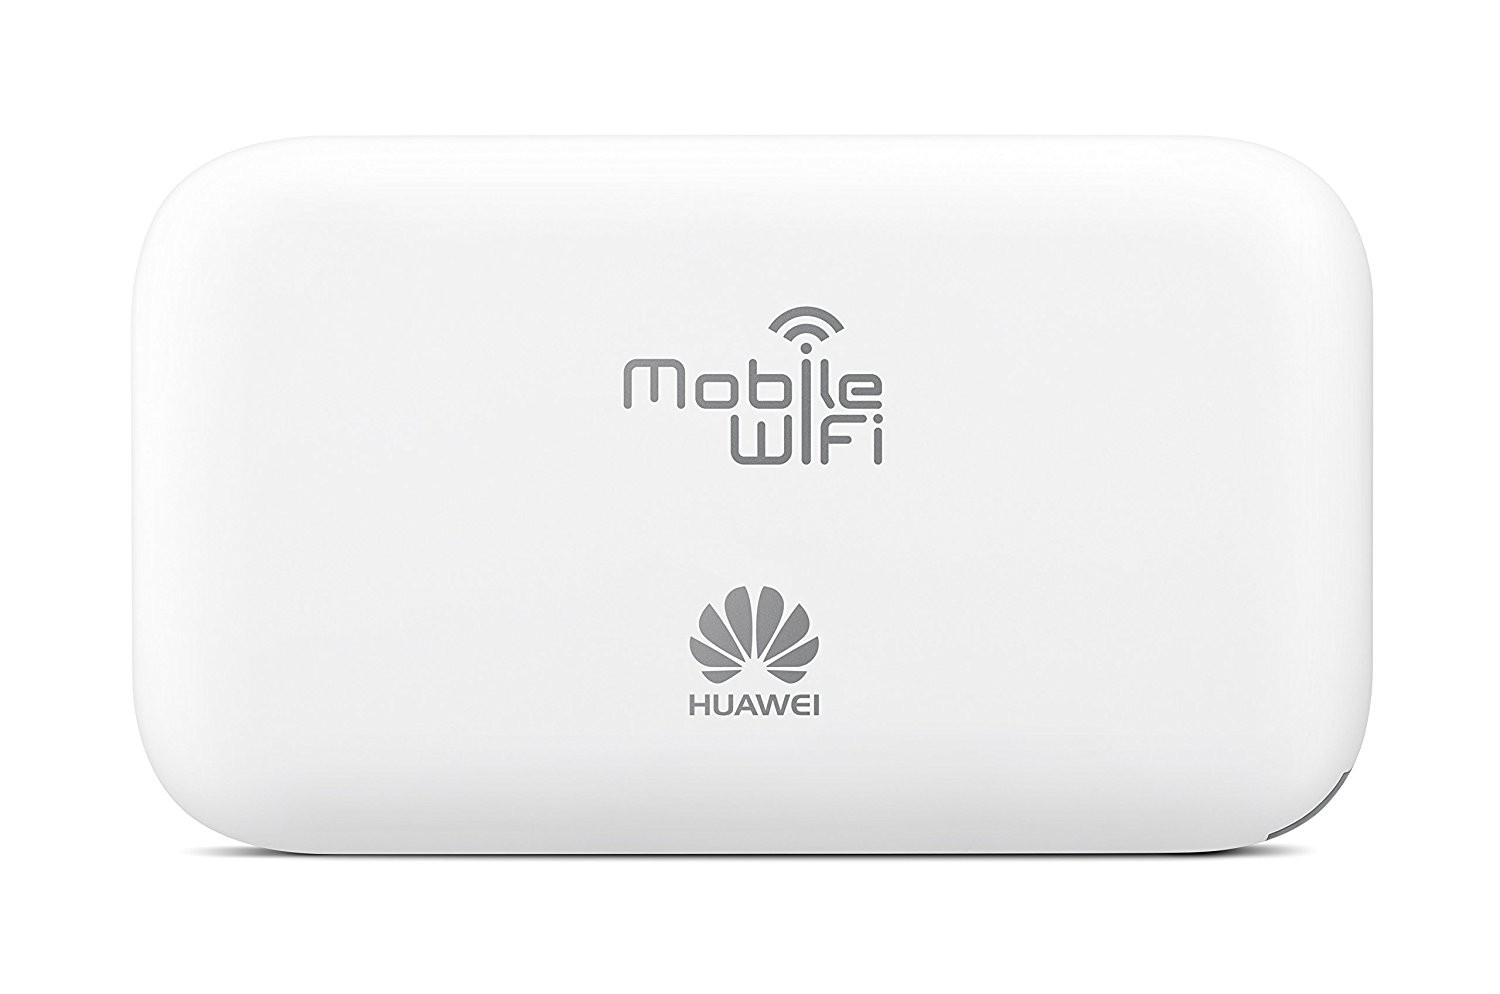 Huawei Mobile WiFi Cute E5573, Portable Router, 4G LTE CAT4